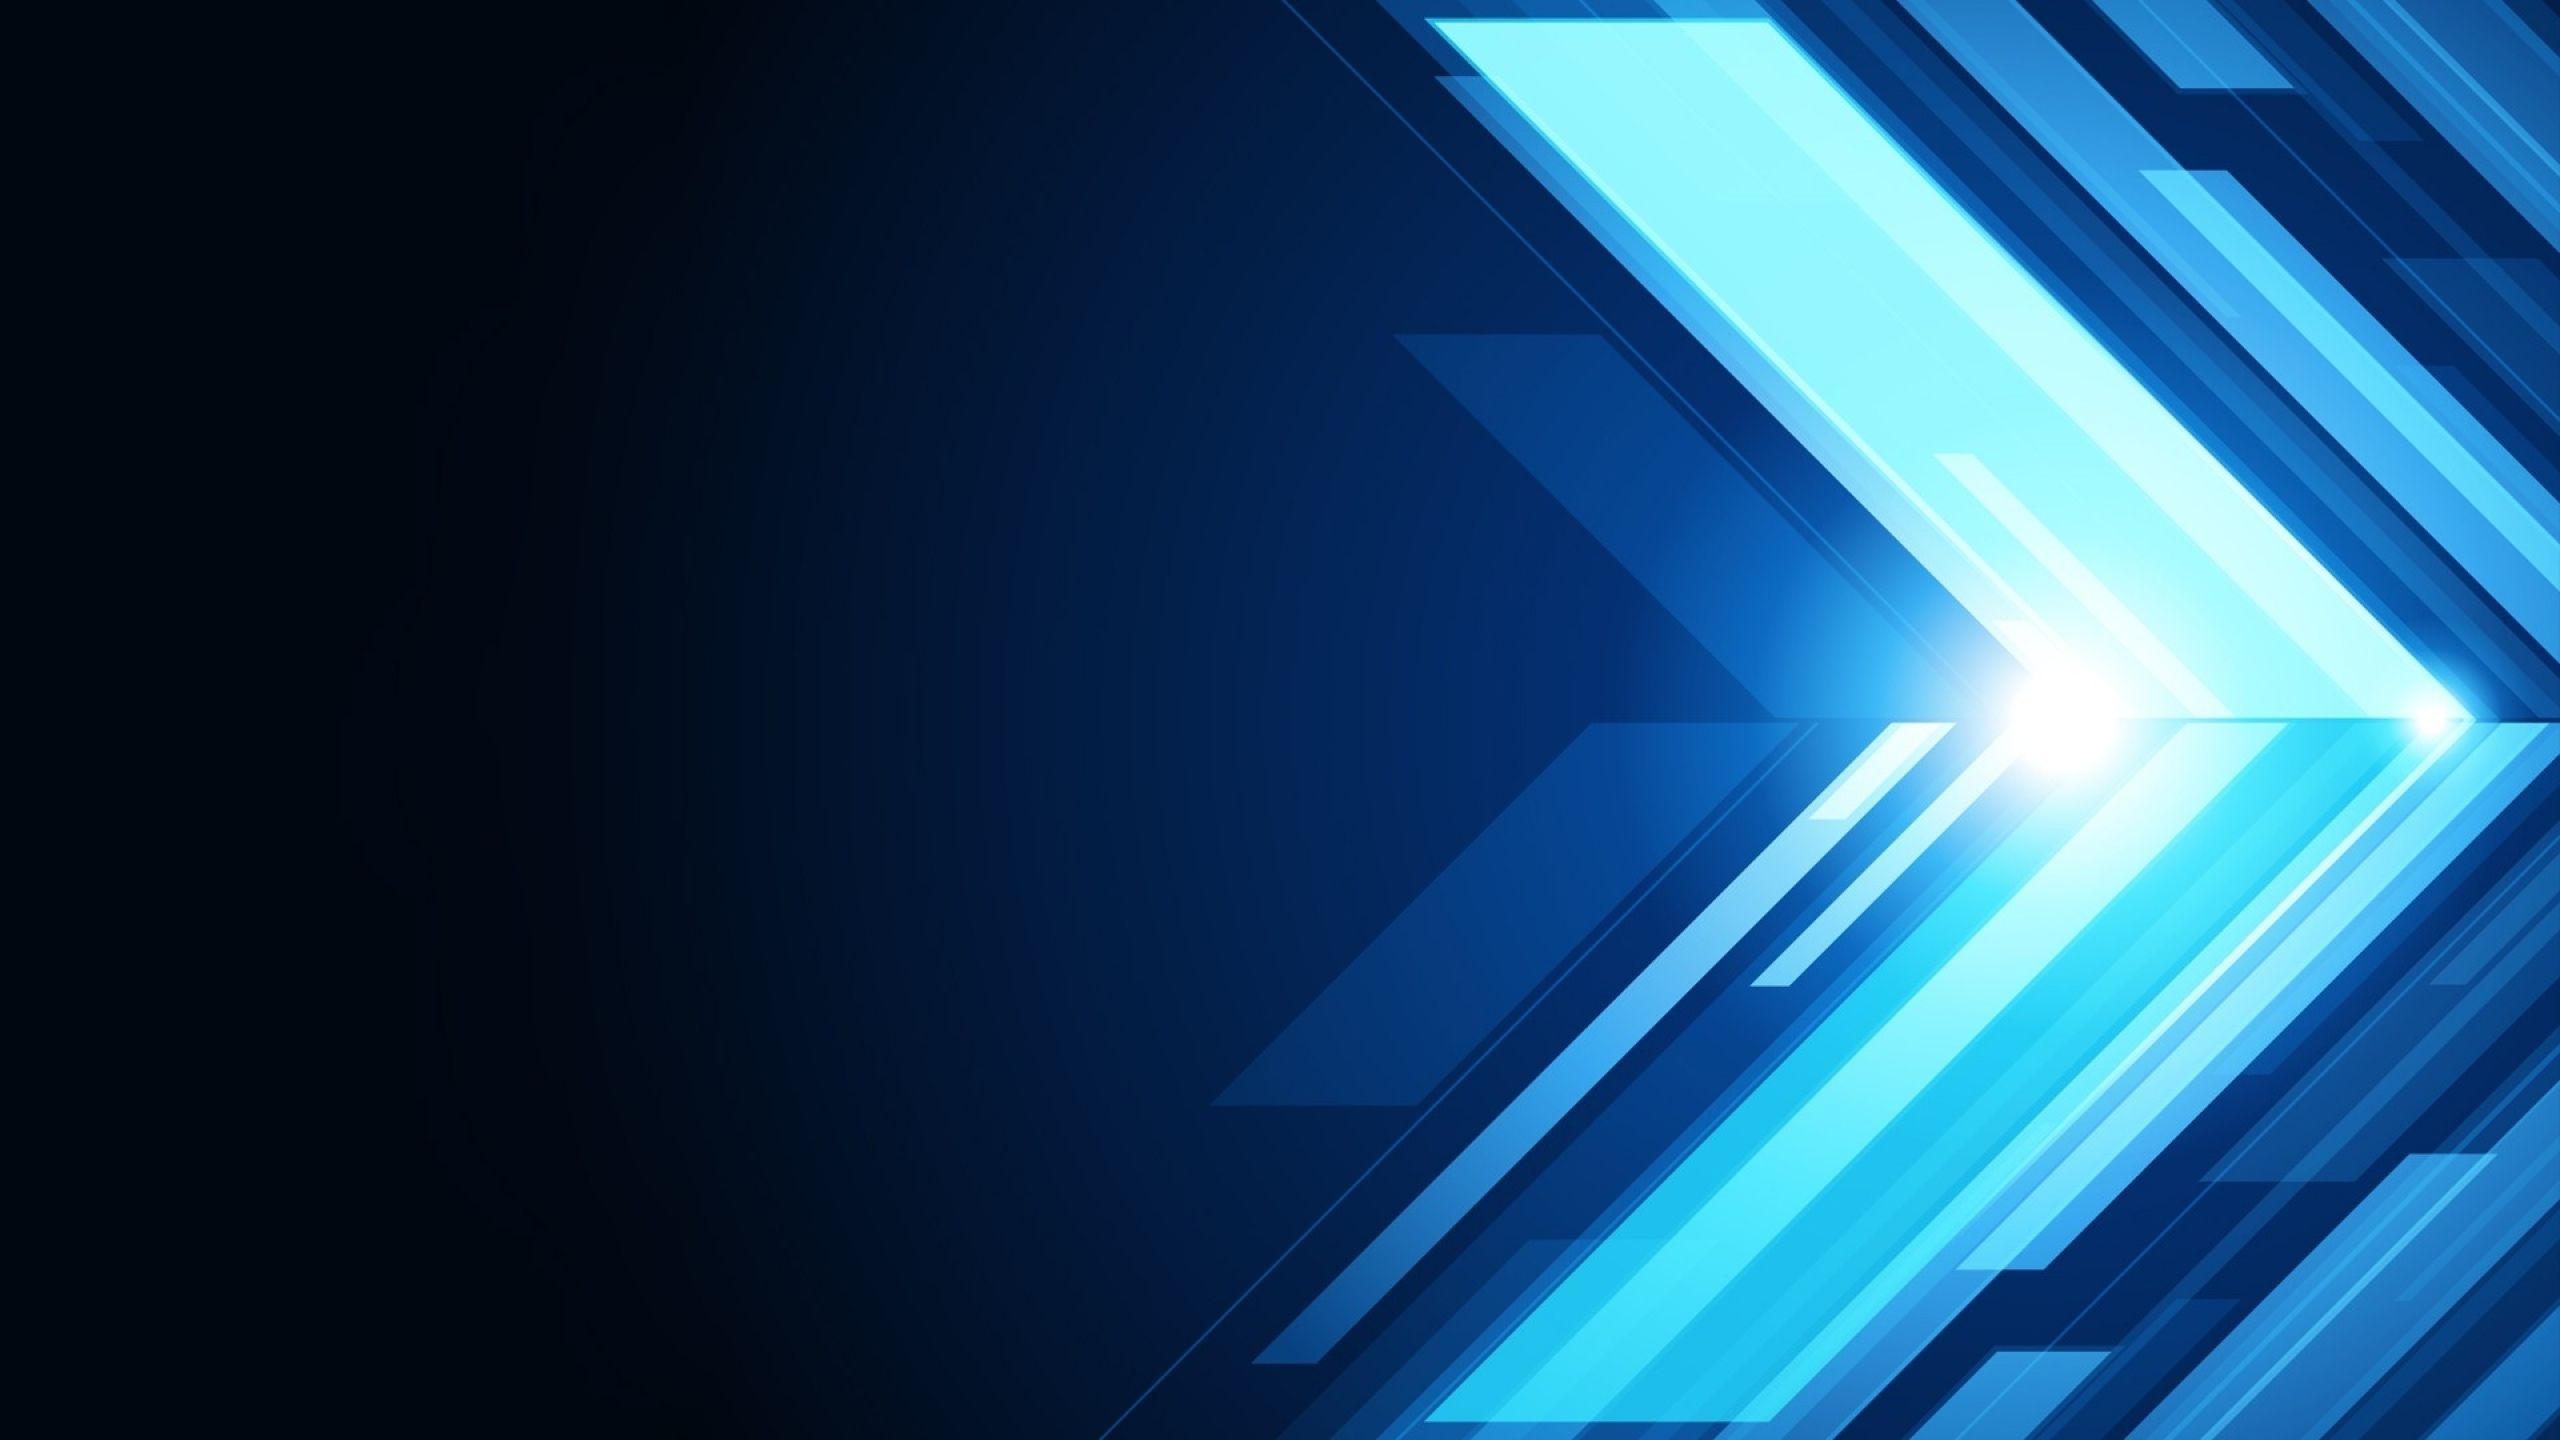 2560x1440 2560x1440 Blue Abstract Hd 1440P Resolution HD 4k Wallpapers, Images ...